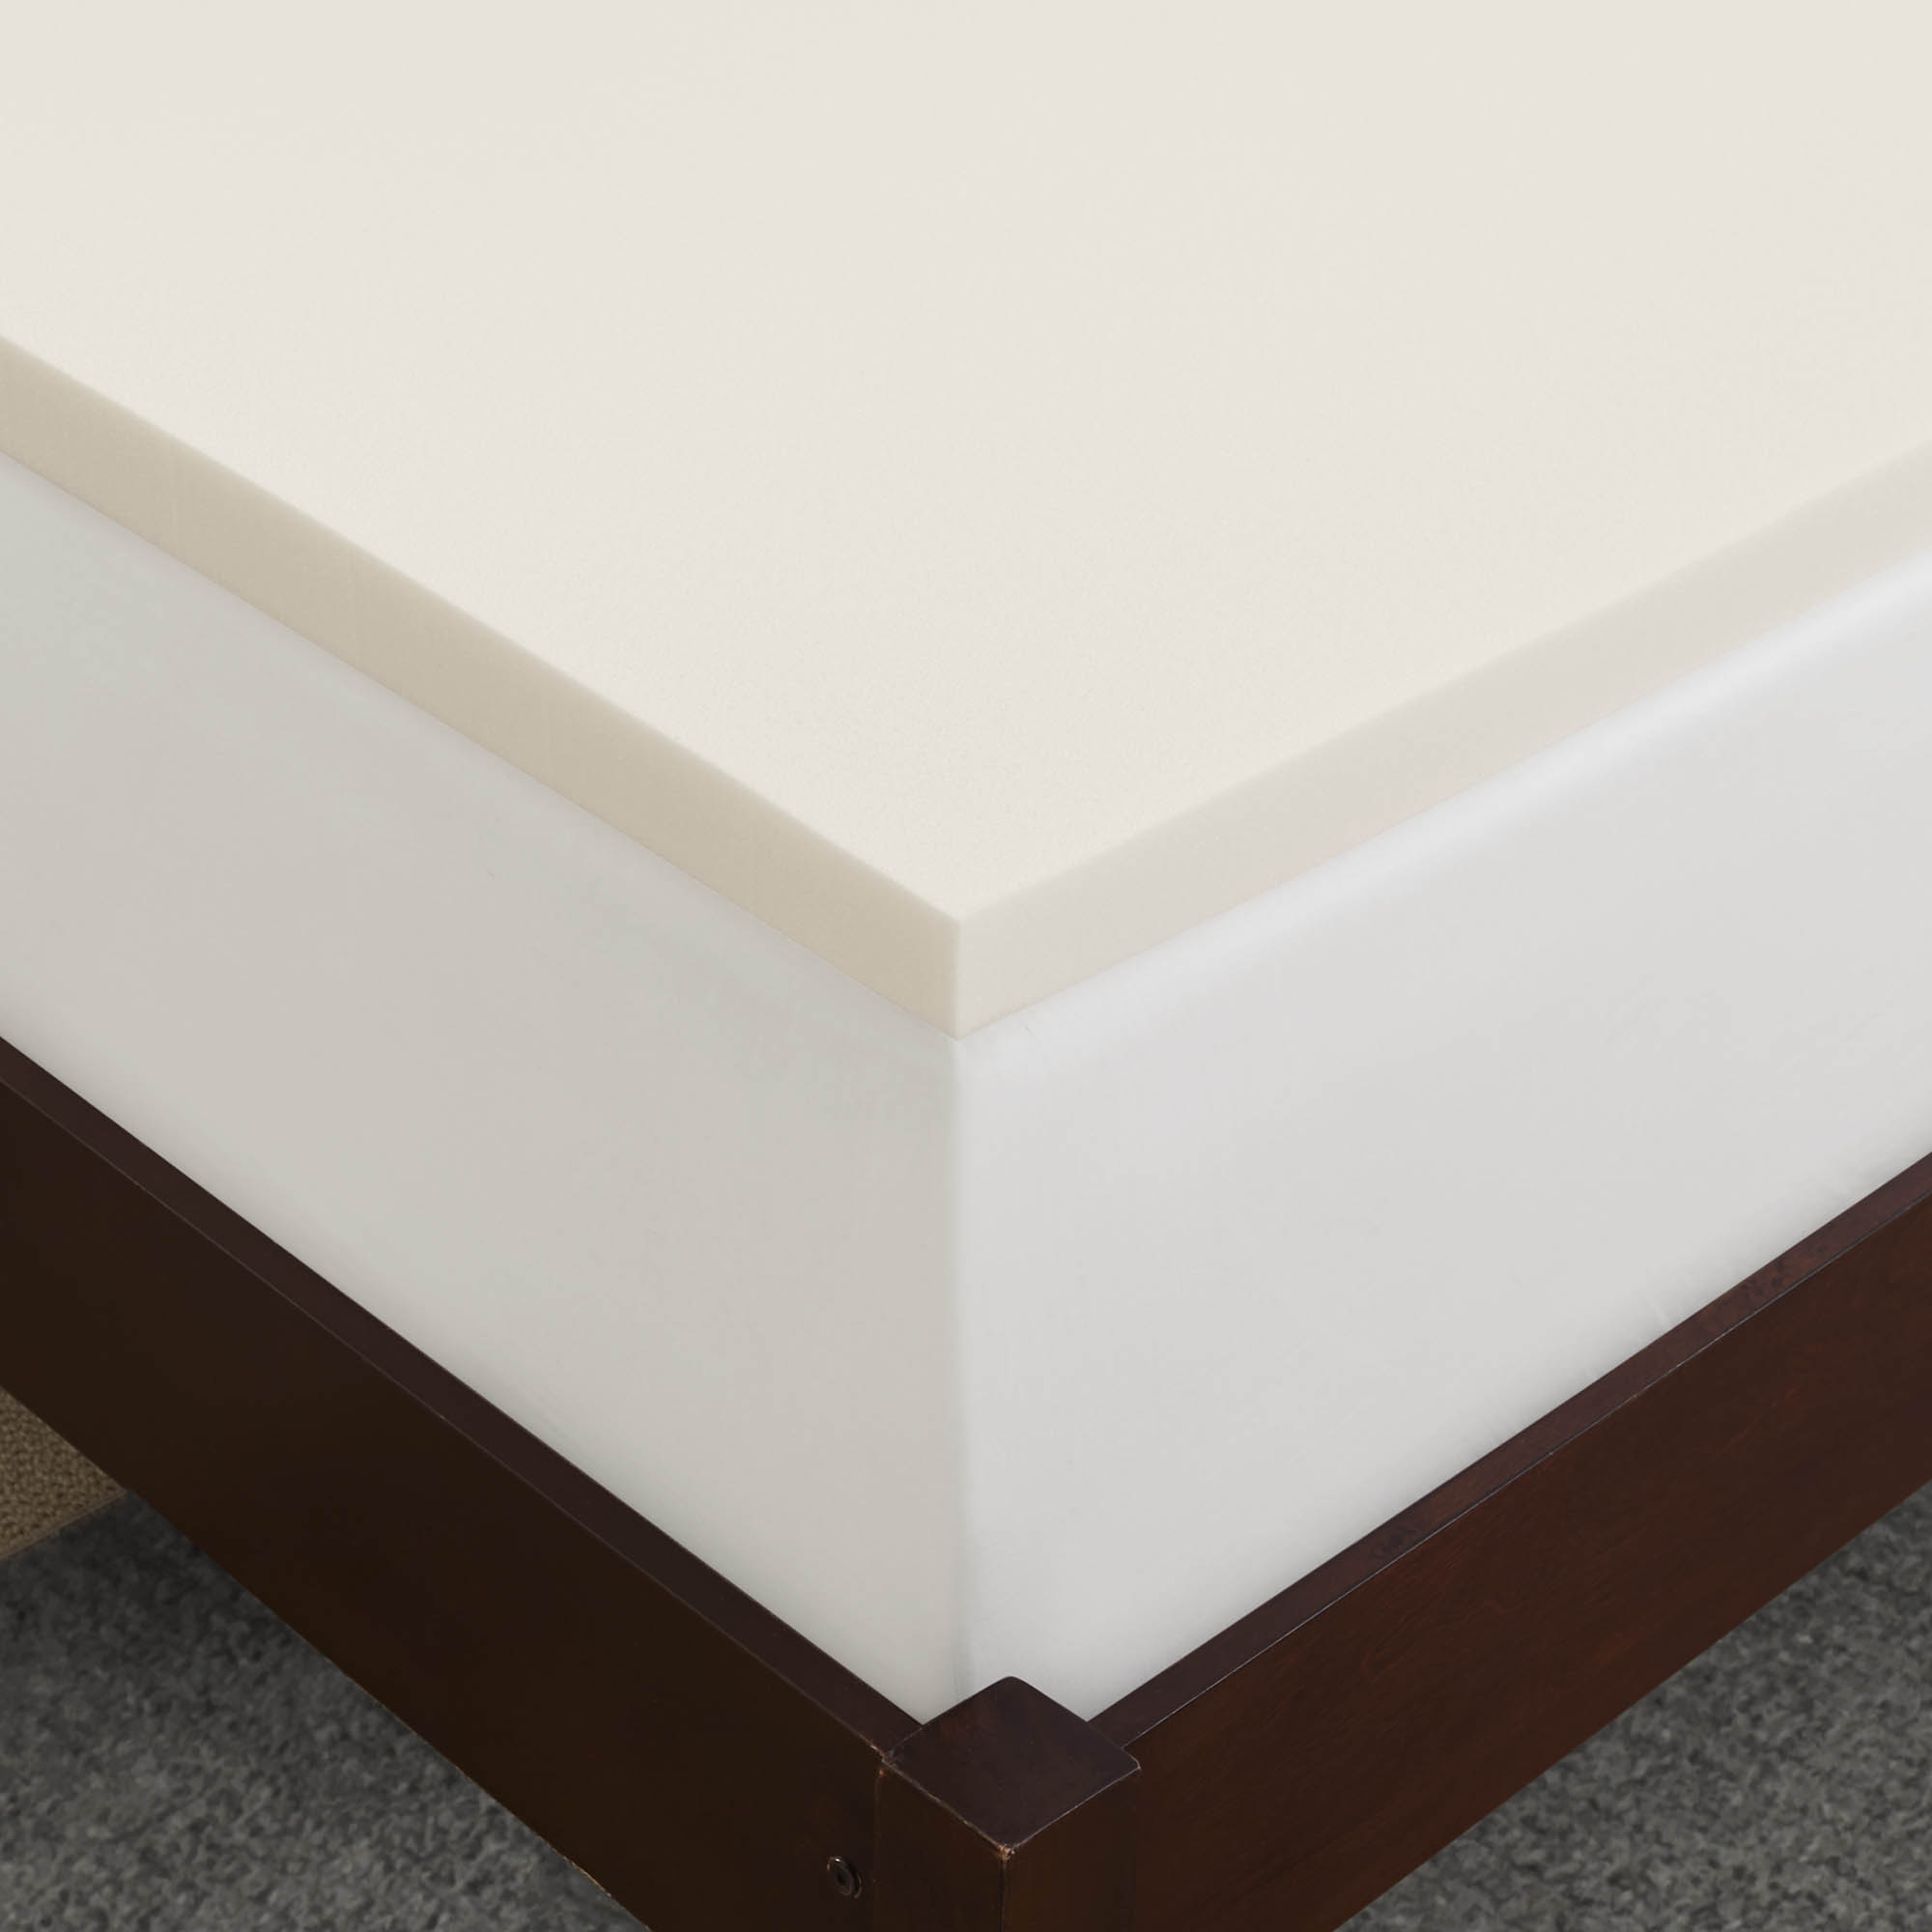 1 1 2 inch memory foam mattress topper Amazon.com: Sleep Innovations 2 Inch SureTemp Memory Foam Topper  1 1 2 inch memory foam mattress topper